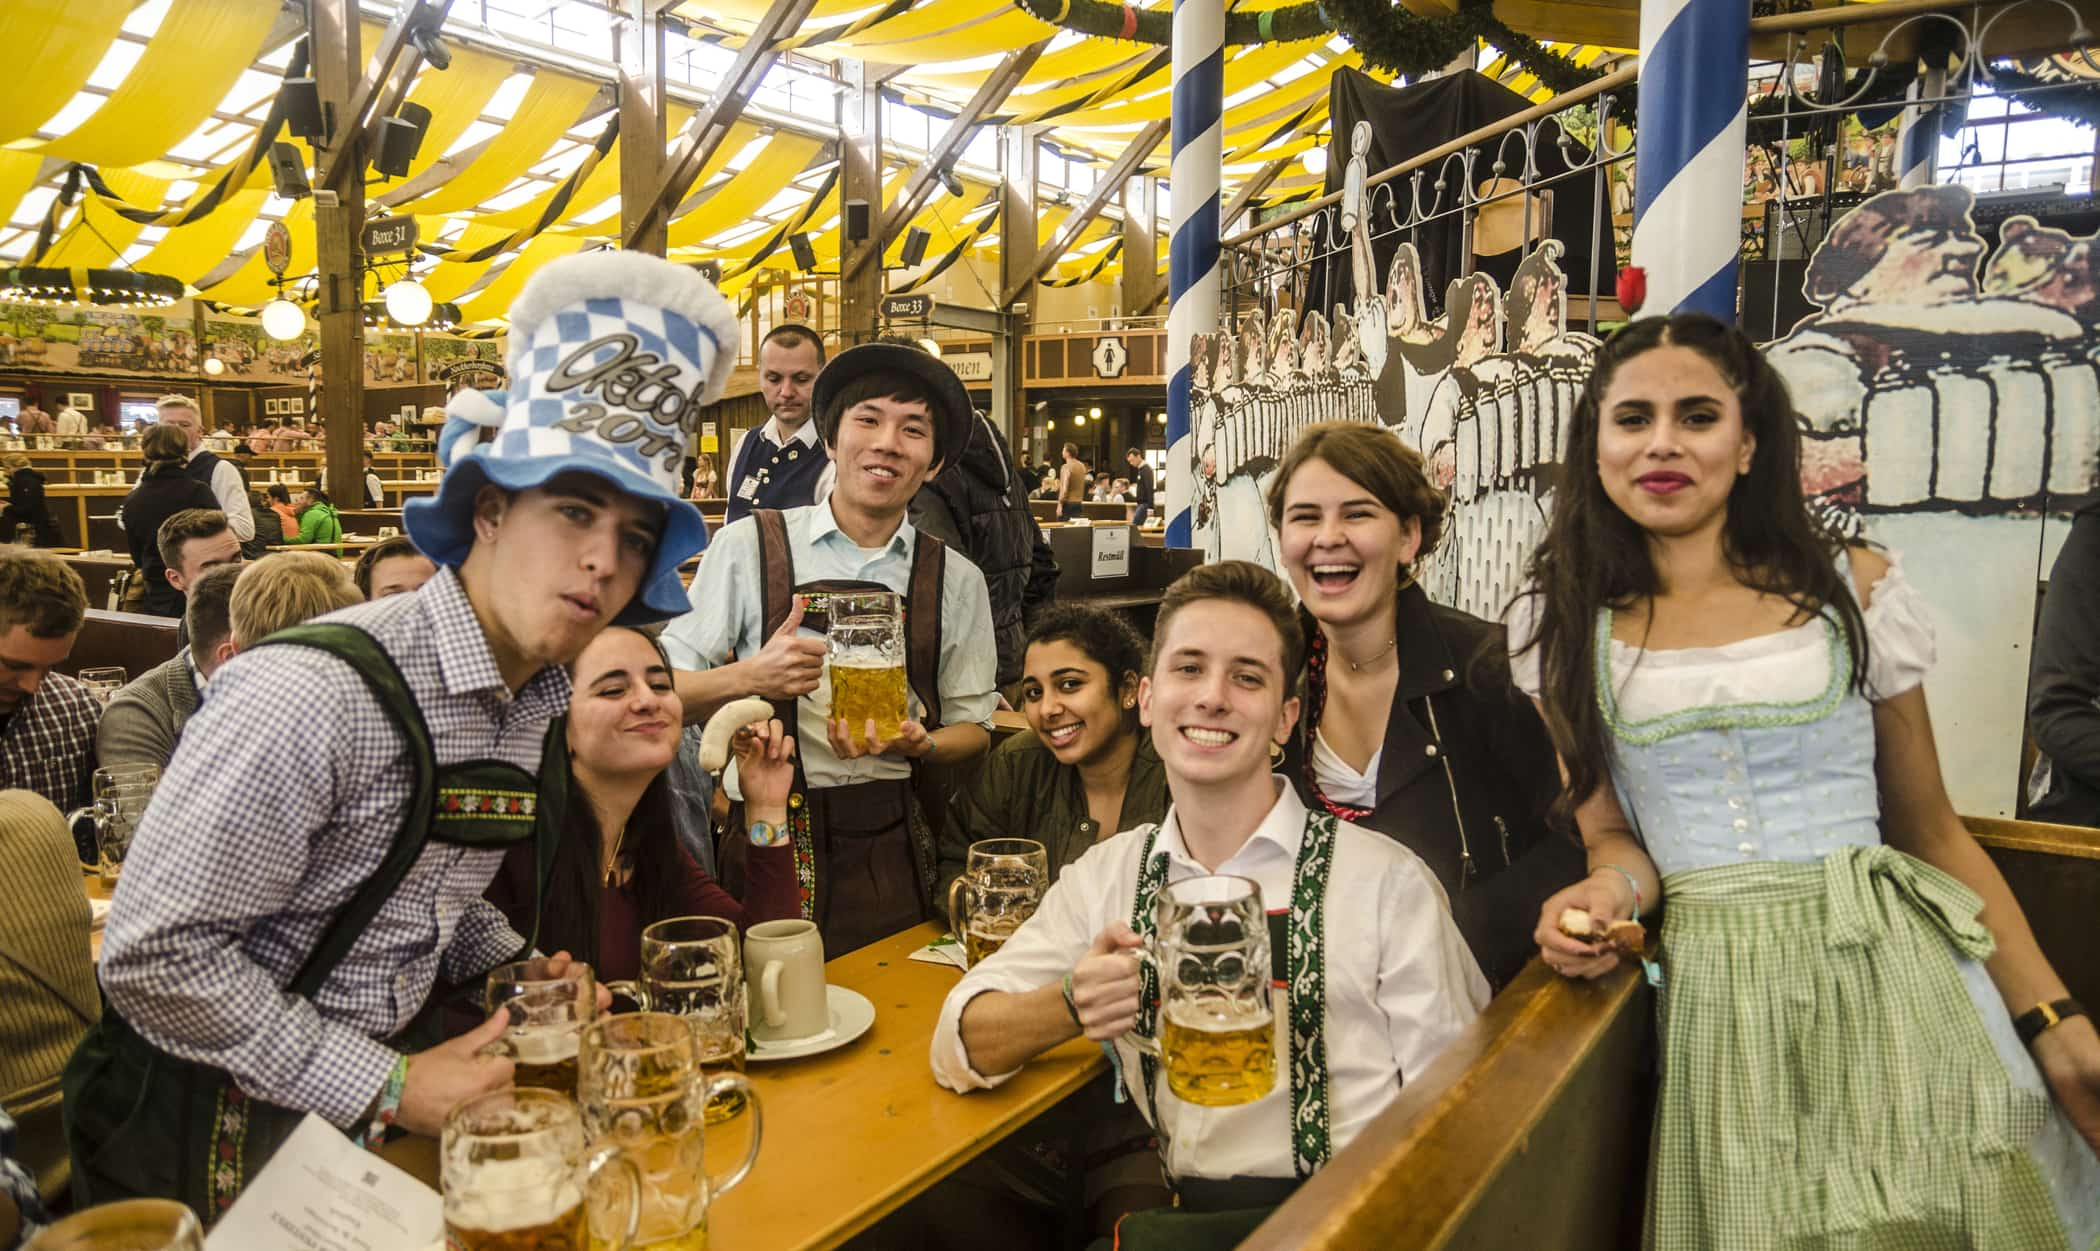 traveling Oktoberfest, Munich with Wanderlust Trips